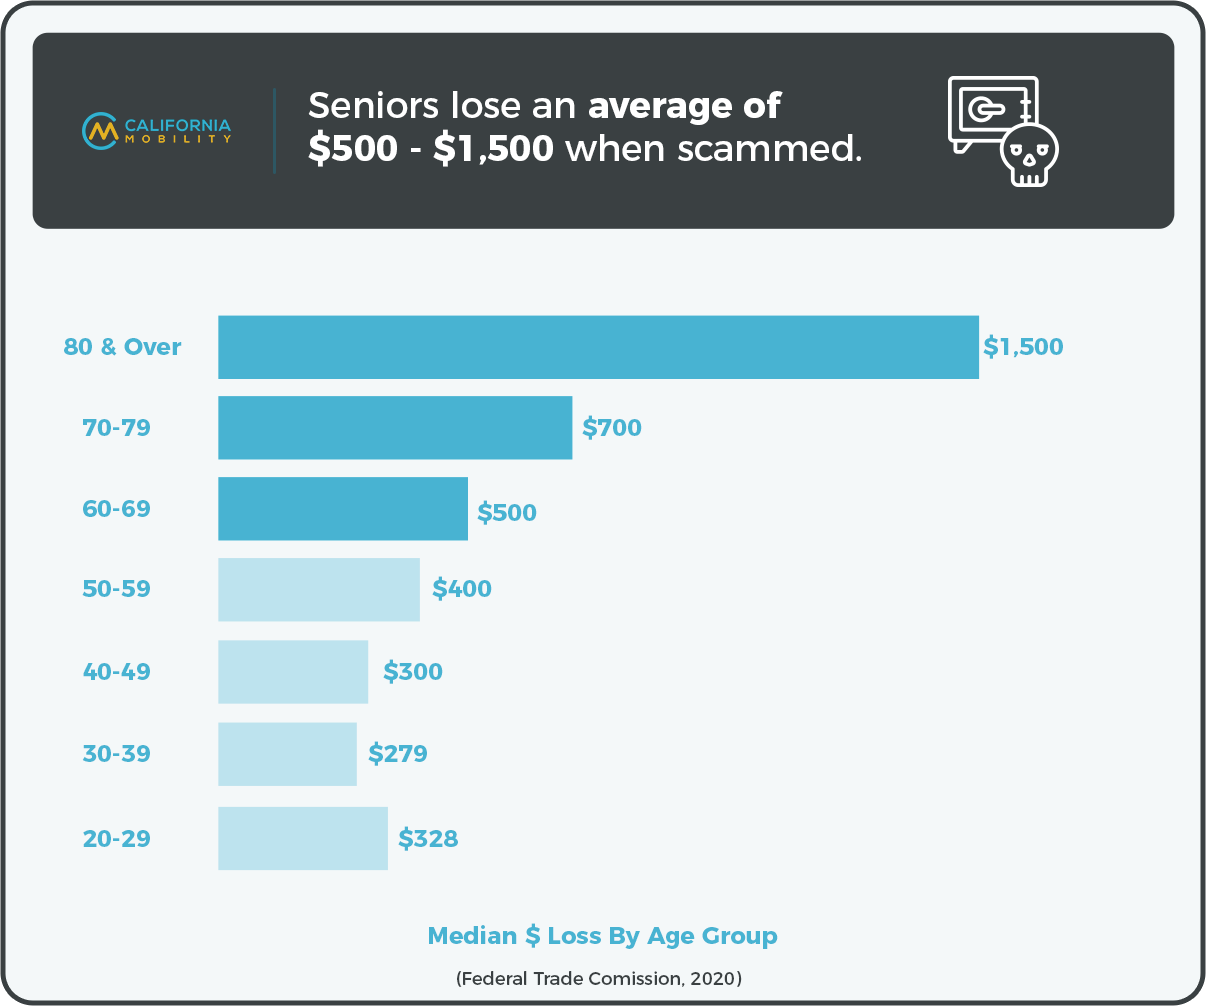 seniors loss to scams data